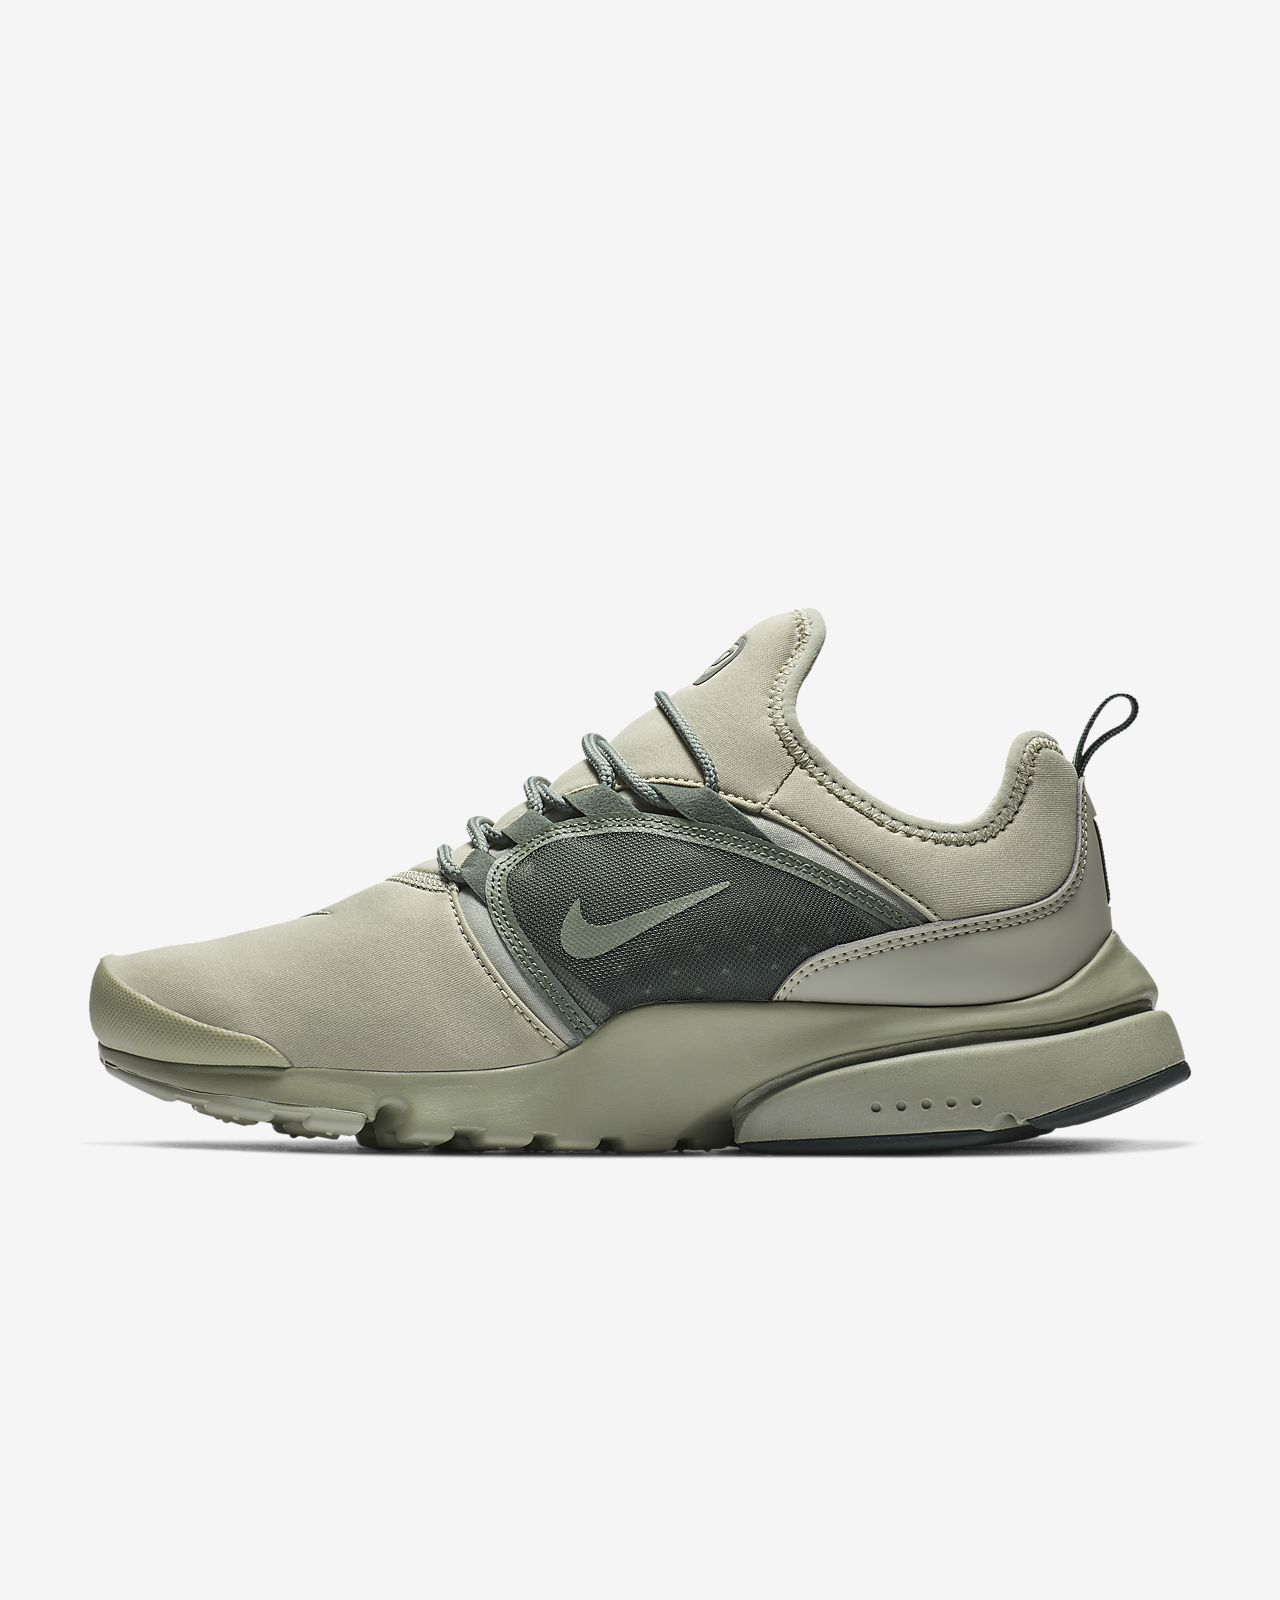 bd8d68b9273 Chaussure Nike Presto Fly World pour Homme. Nike.com FR